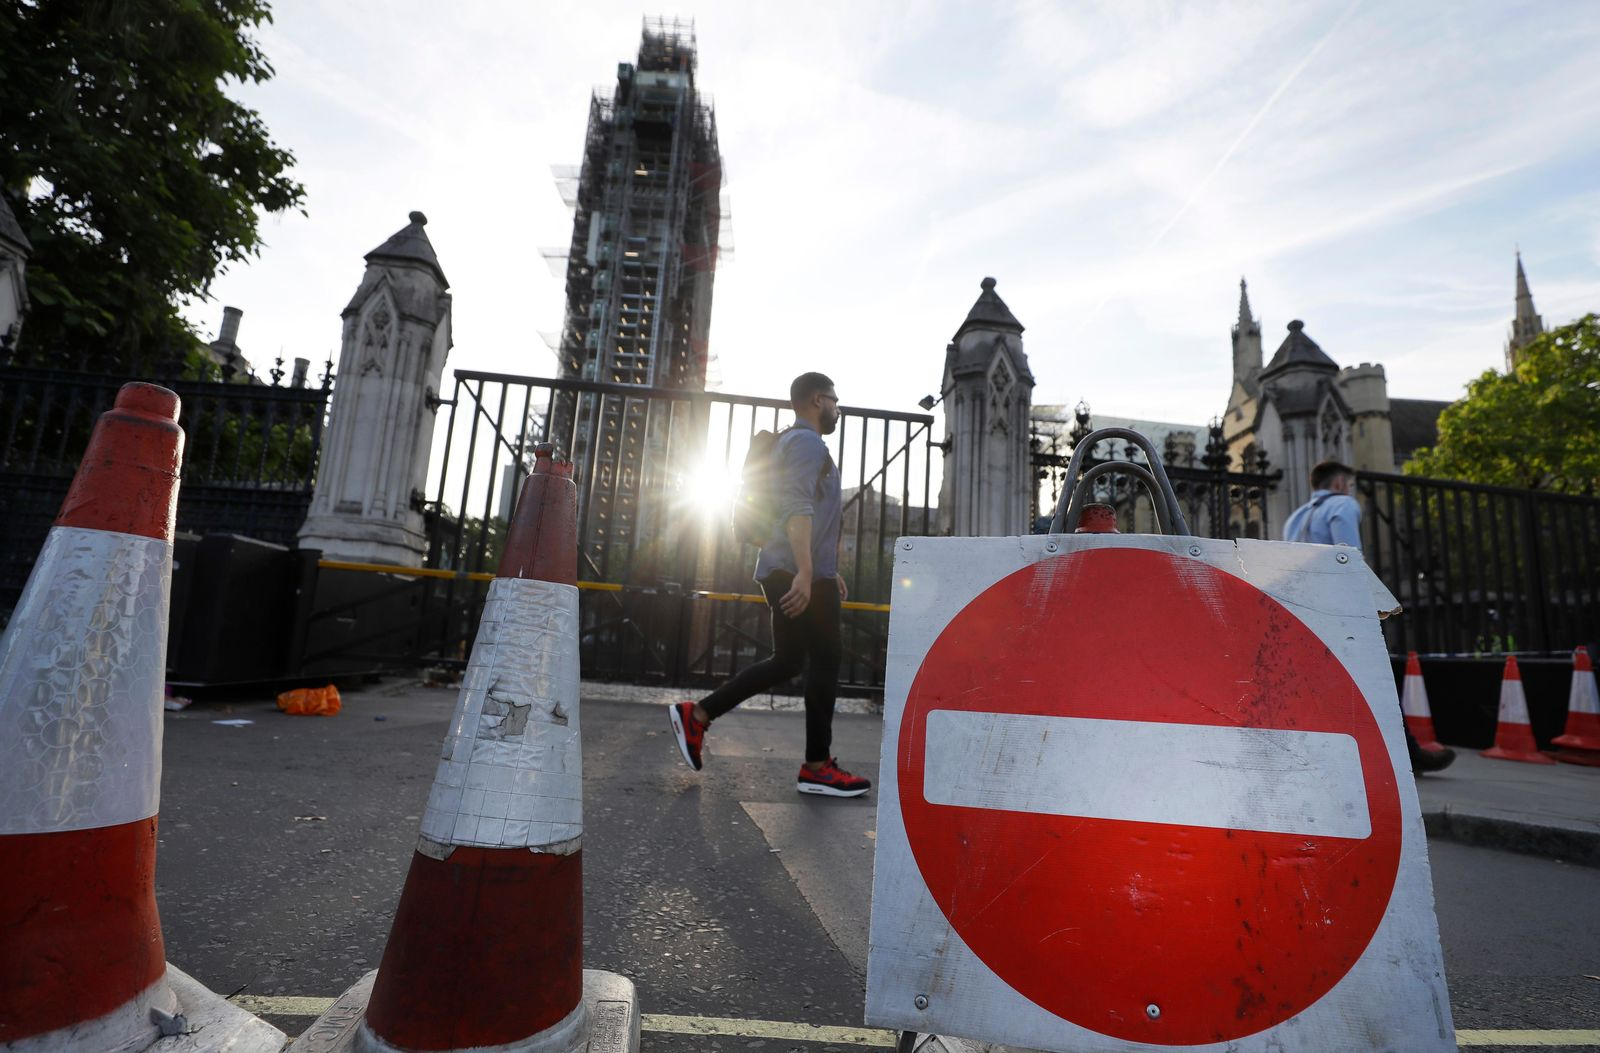 A no-entry road sign sits in front of the entrance to Britain's Parliament in London, Thursday, Aug. 29, 2019. (AP Photo/Kirsty Wigglesworth)